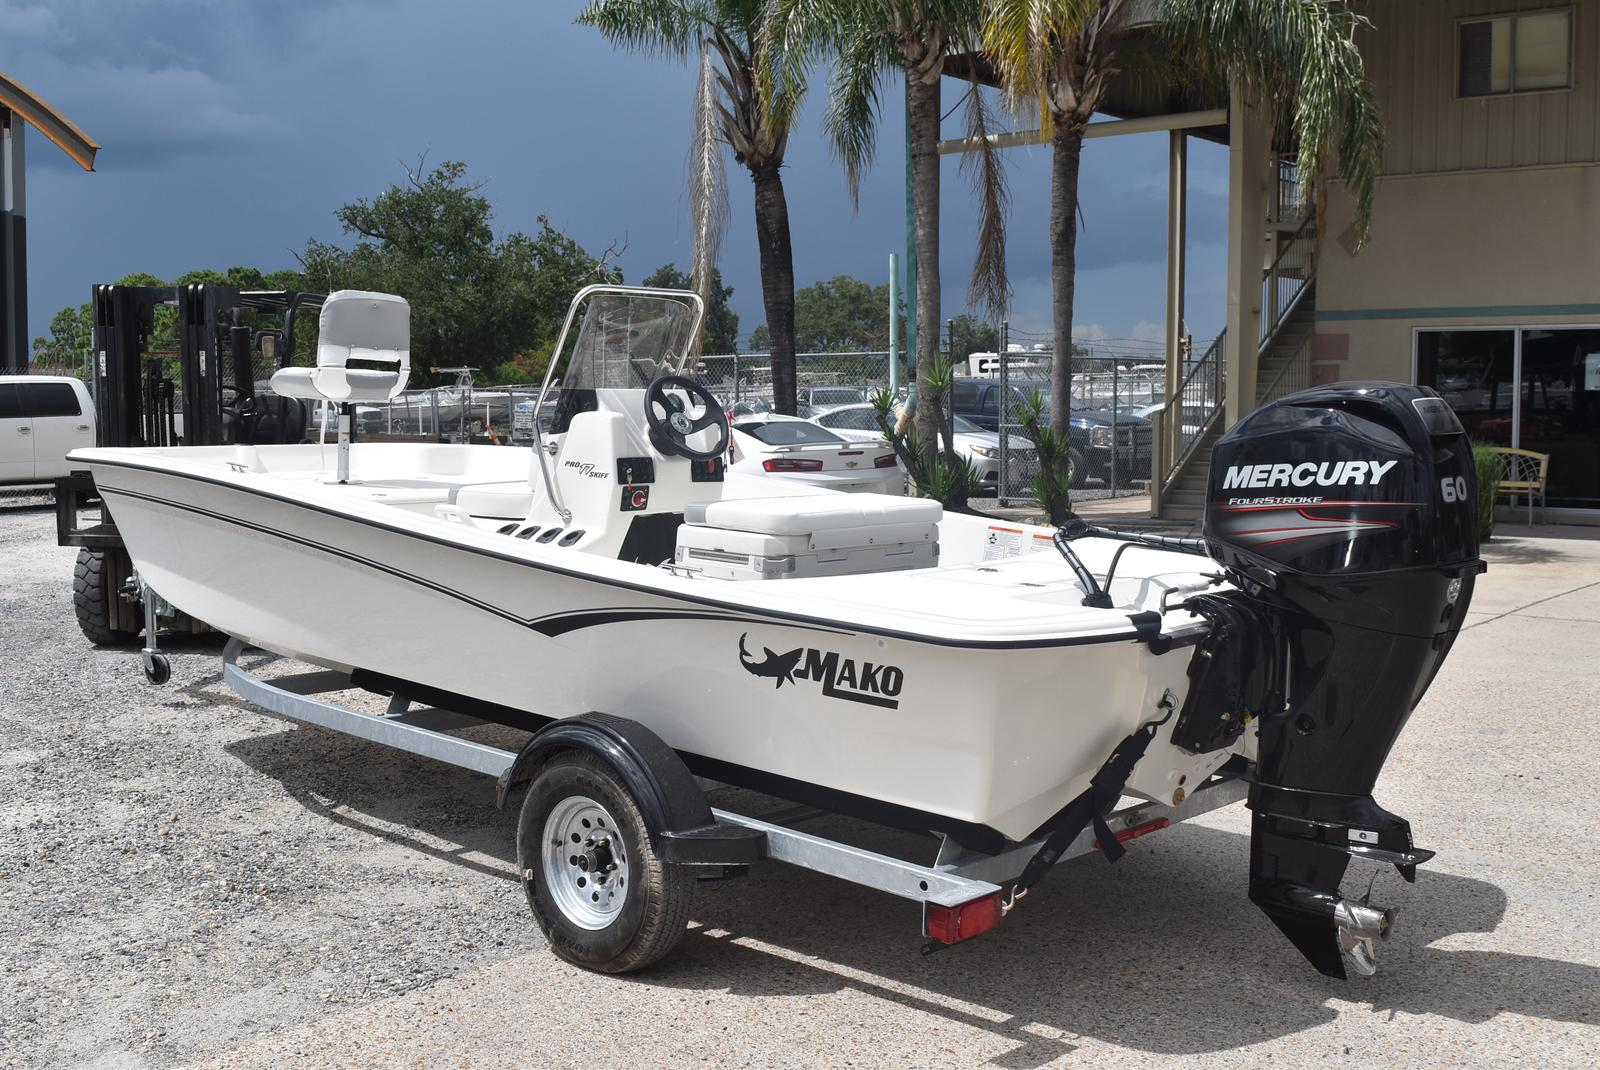 2020 Mako boat for sale, model of the boat is Pro Skiff 17, 75 ELPT & Image # 234 of 702